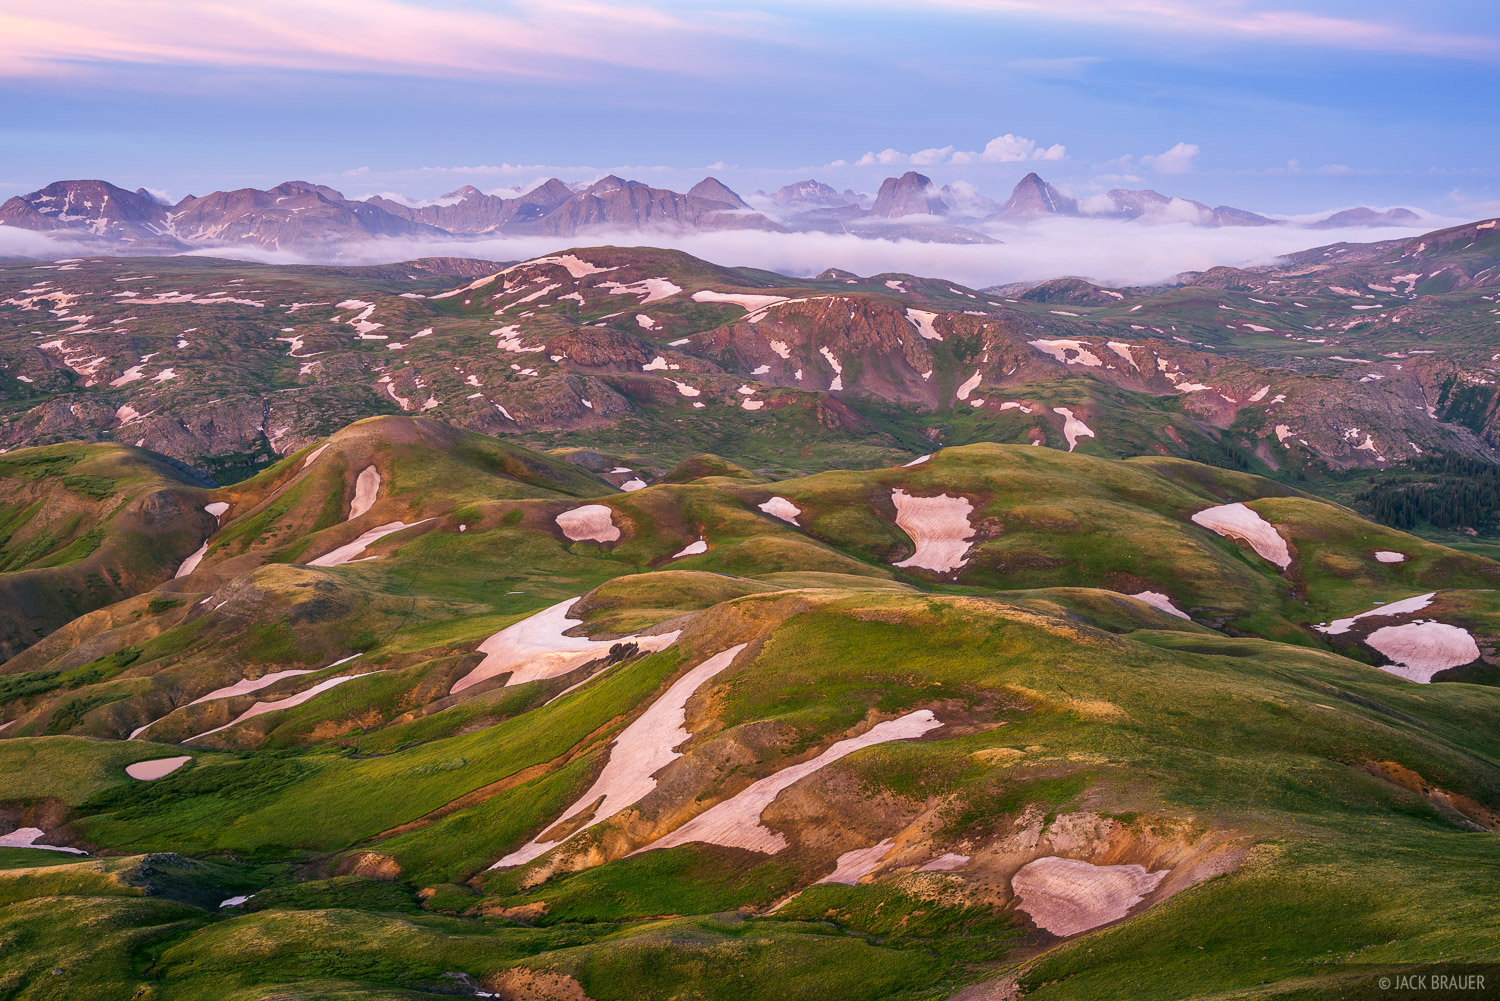 The rugged Grenadier Range rises above the rolling green tundra of the Weminuche Wilderness - July.